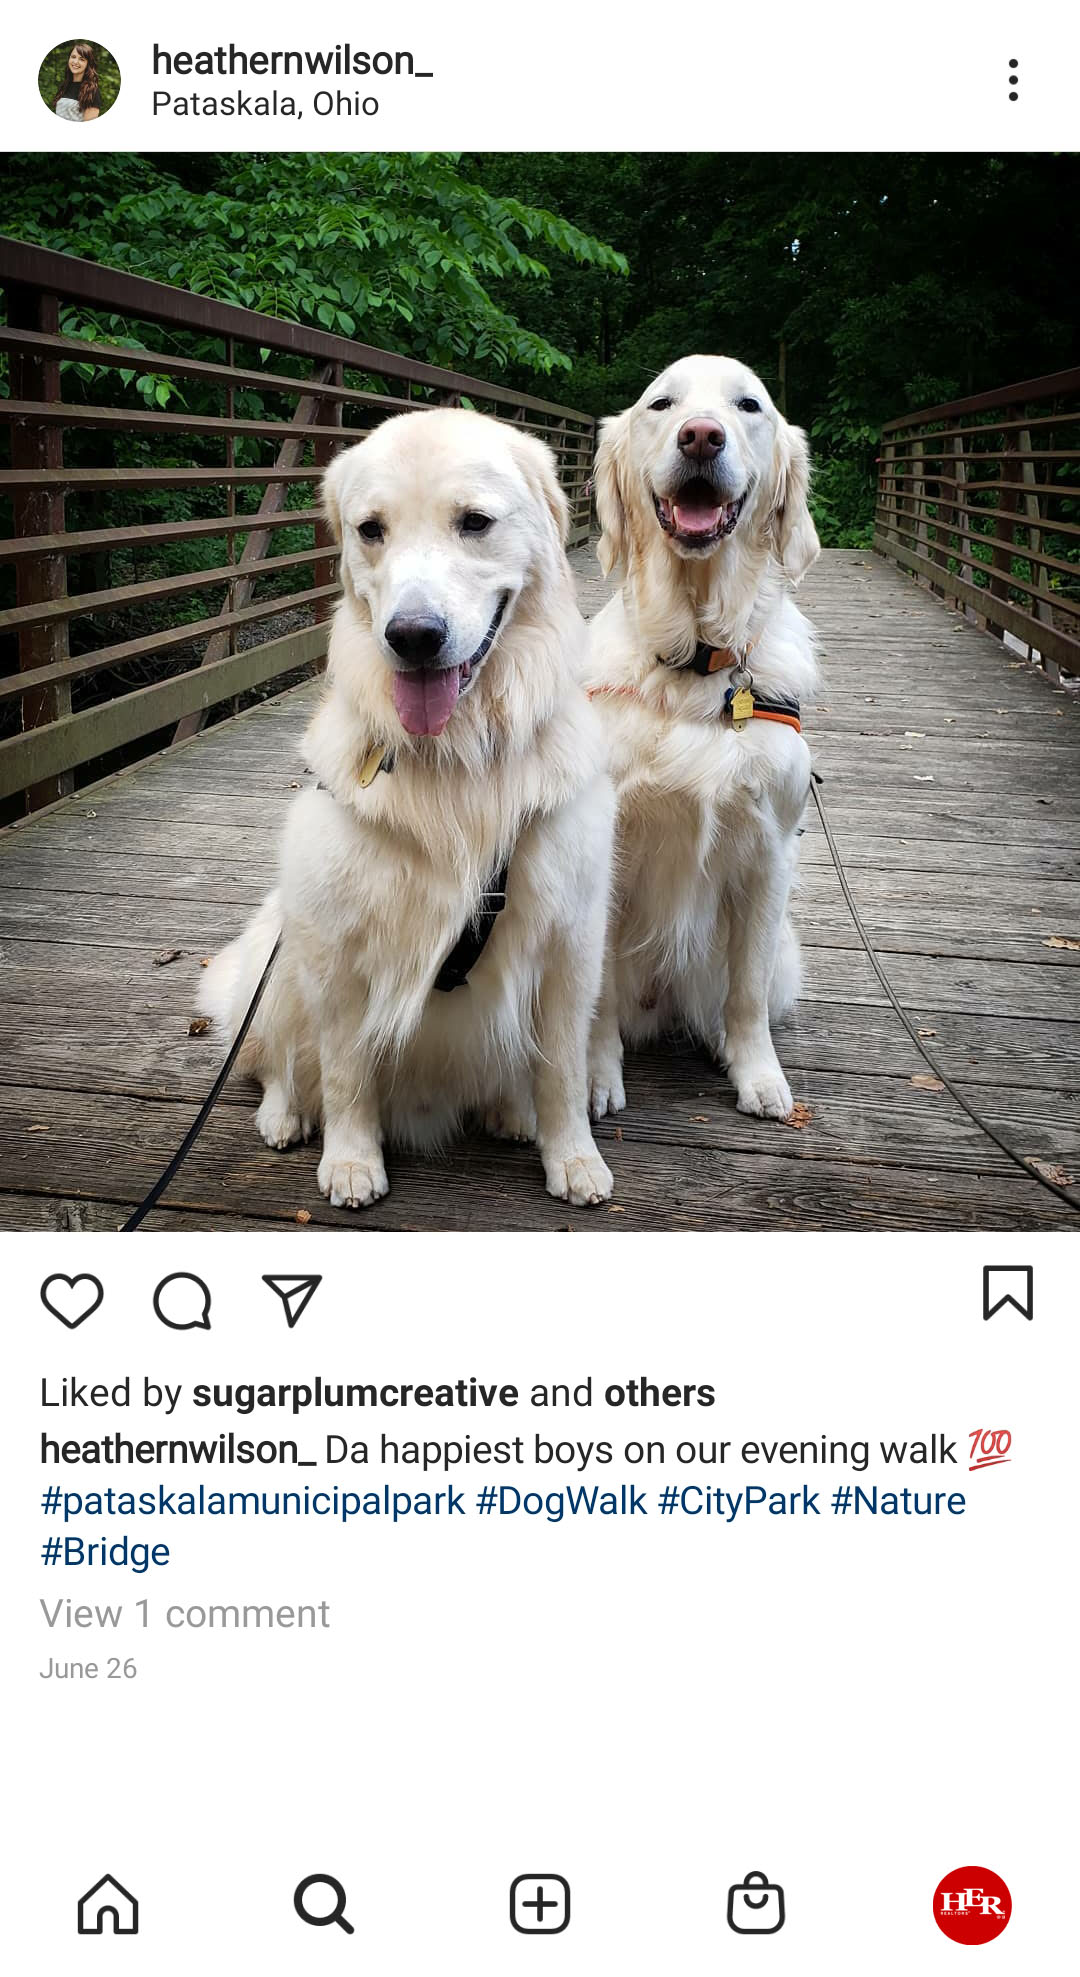 Two whitw Dogs